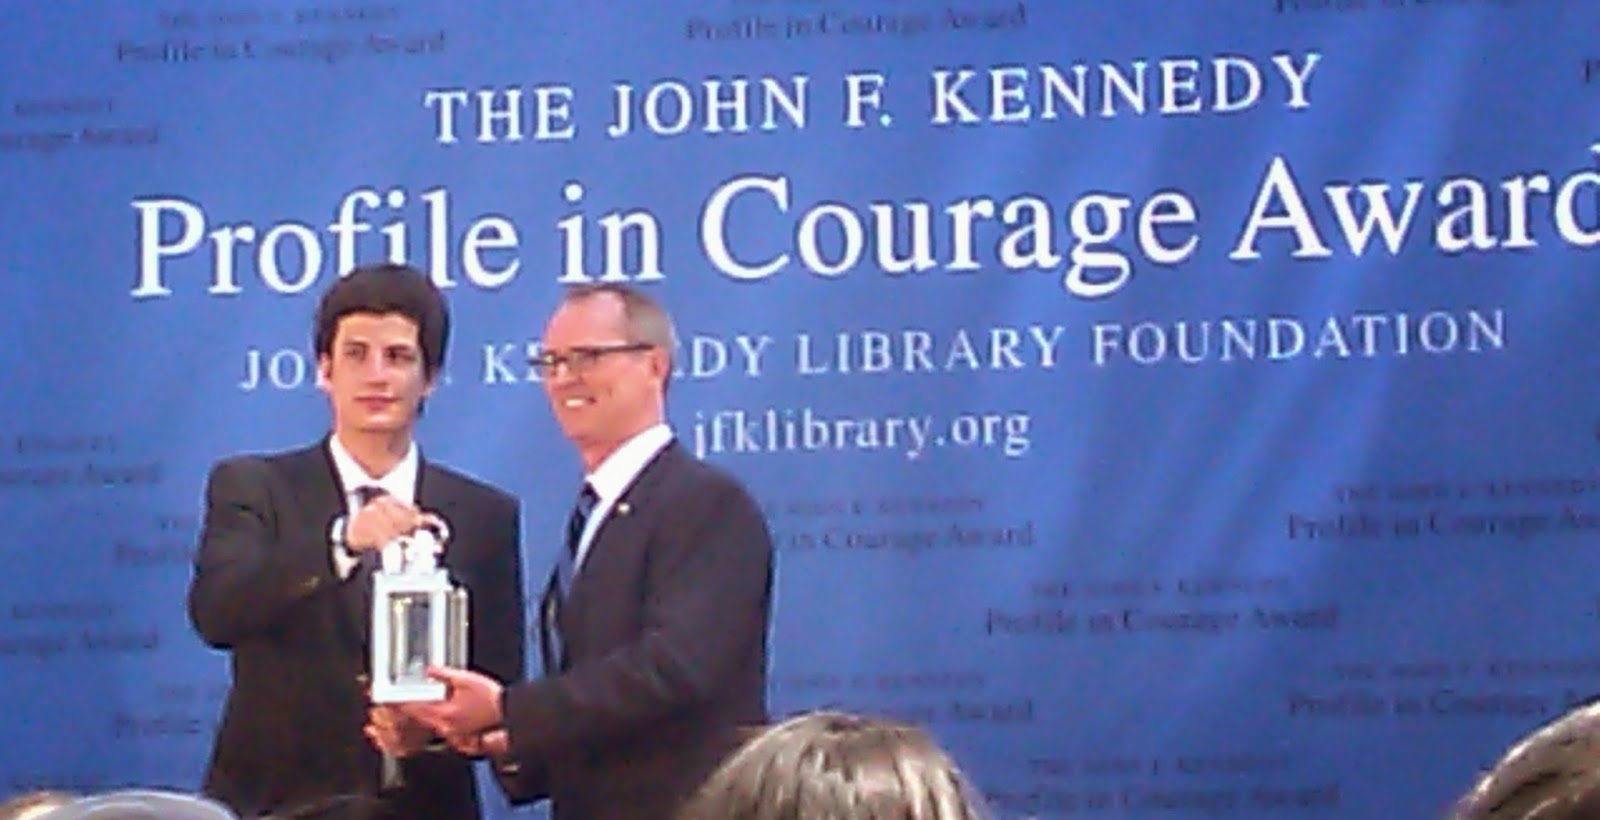 ma yan tikvah s divrei earth profile in courage omer day 30 the profile in courage award was presented by jack schlossberg grandson of president john f kennedy